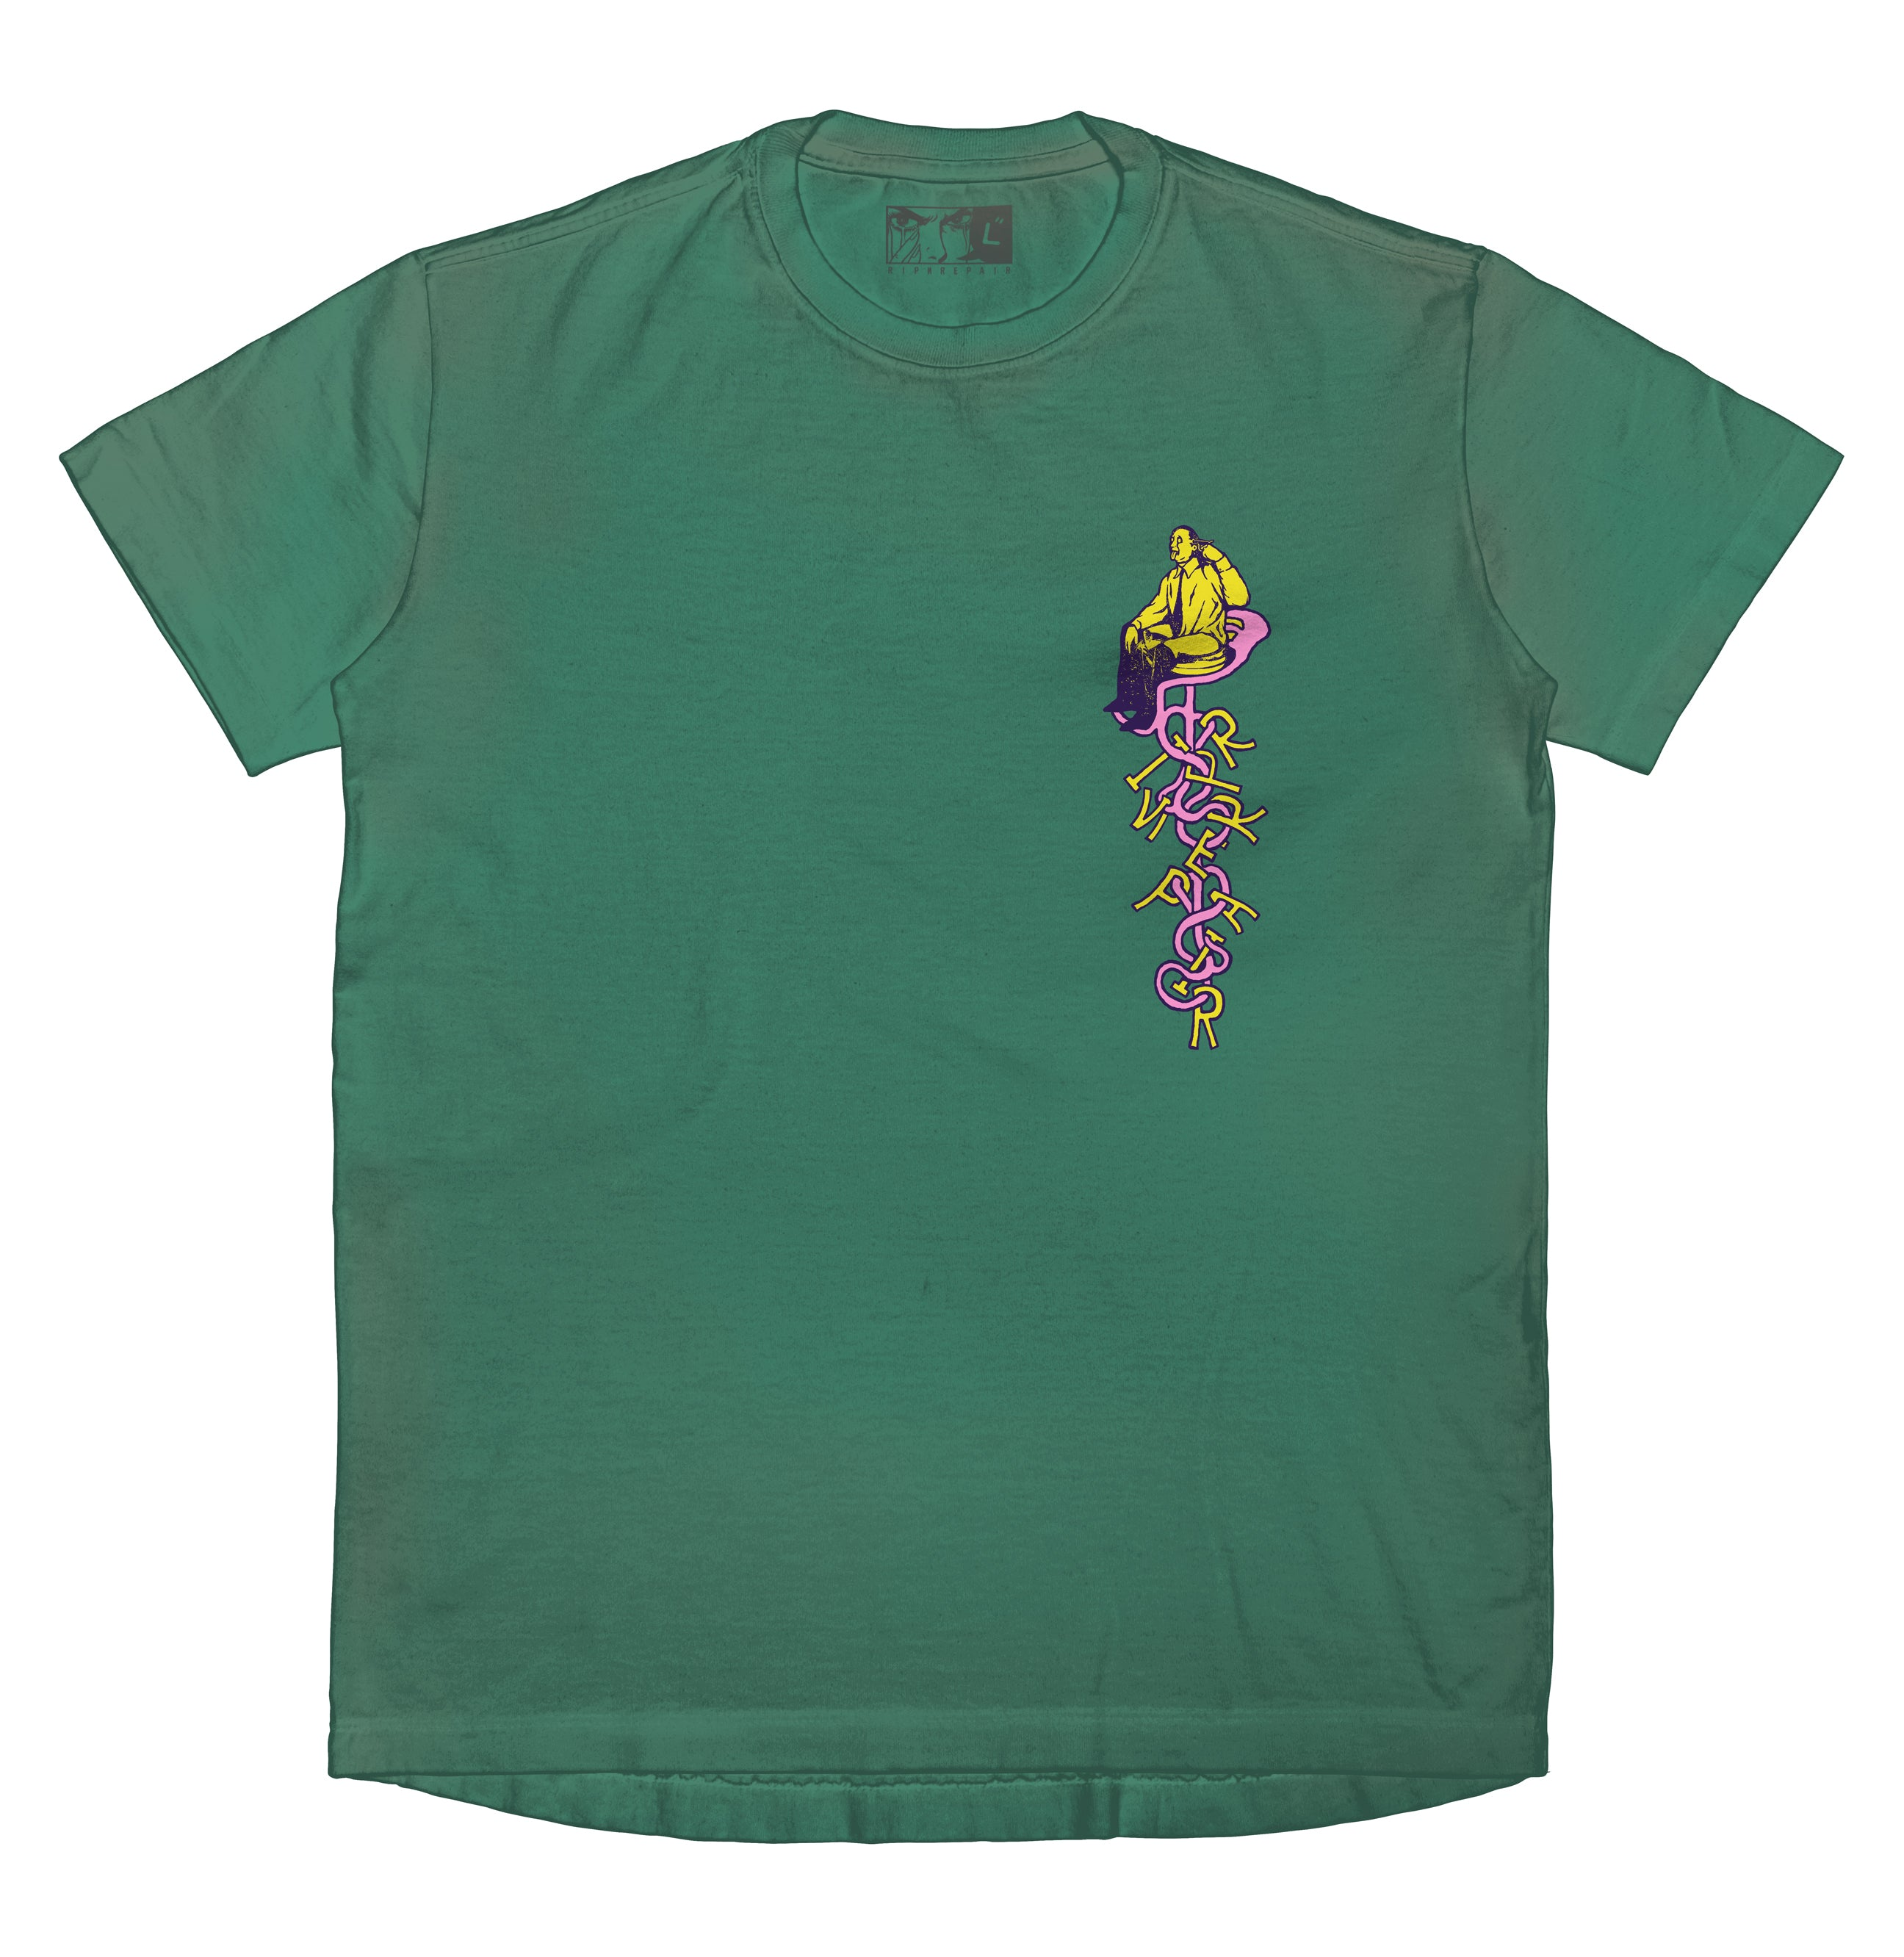 Processing - T-Shirt (W.Green) - RIPNRPR